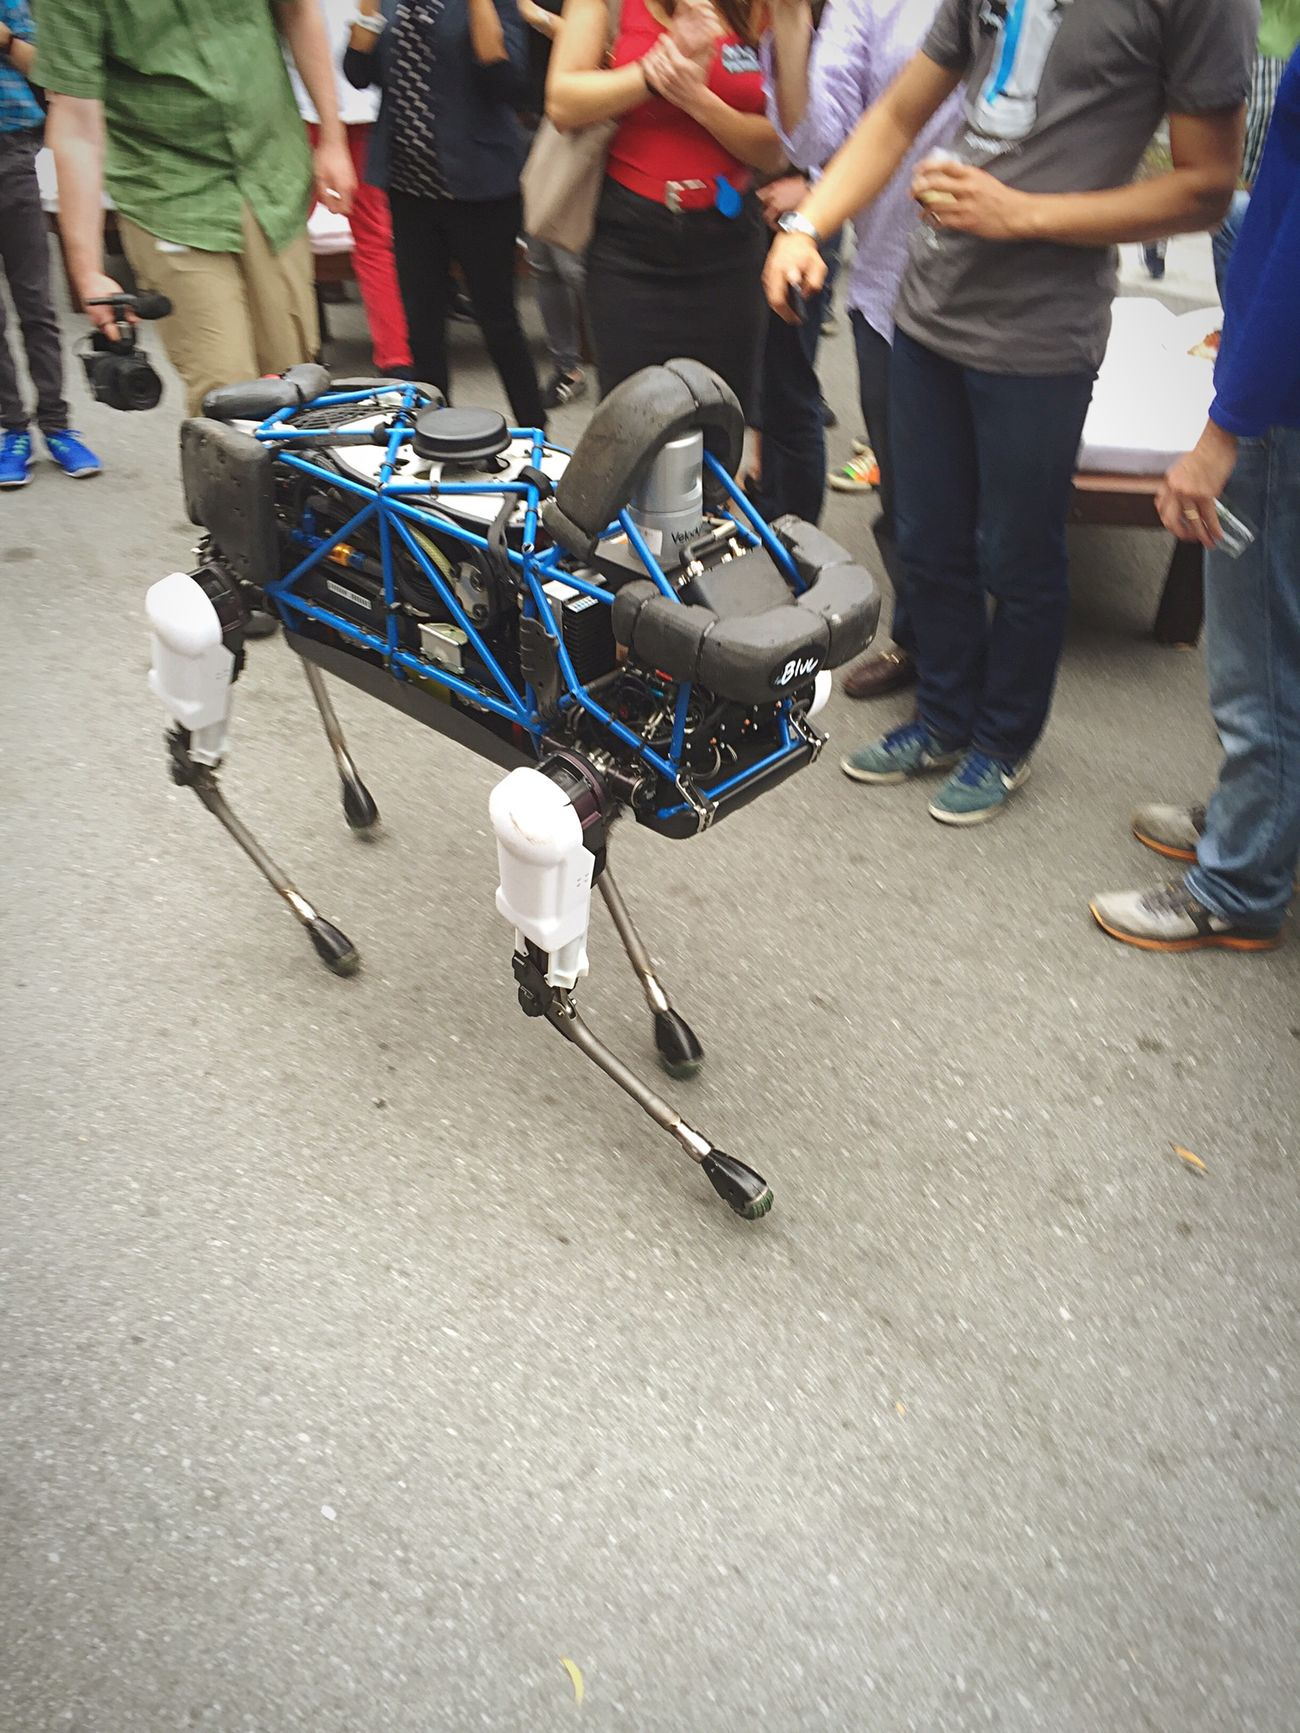 Spot, the robot dog. Robot